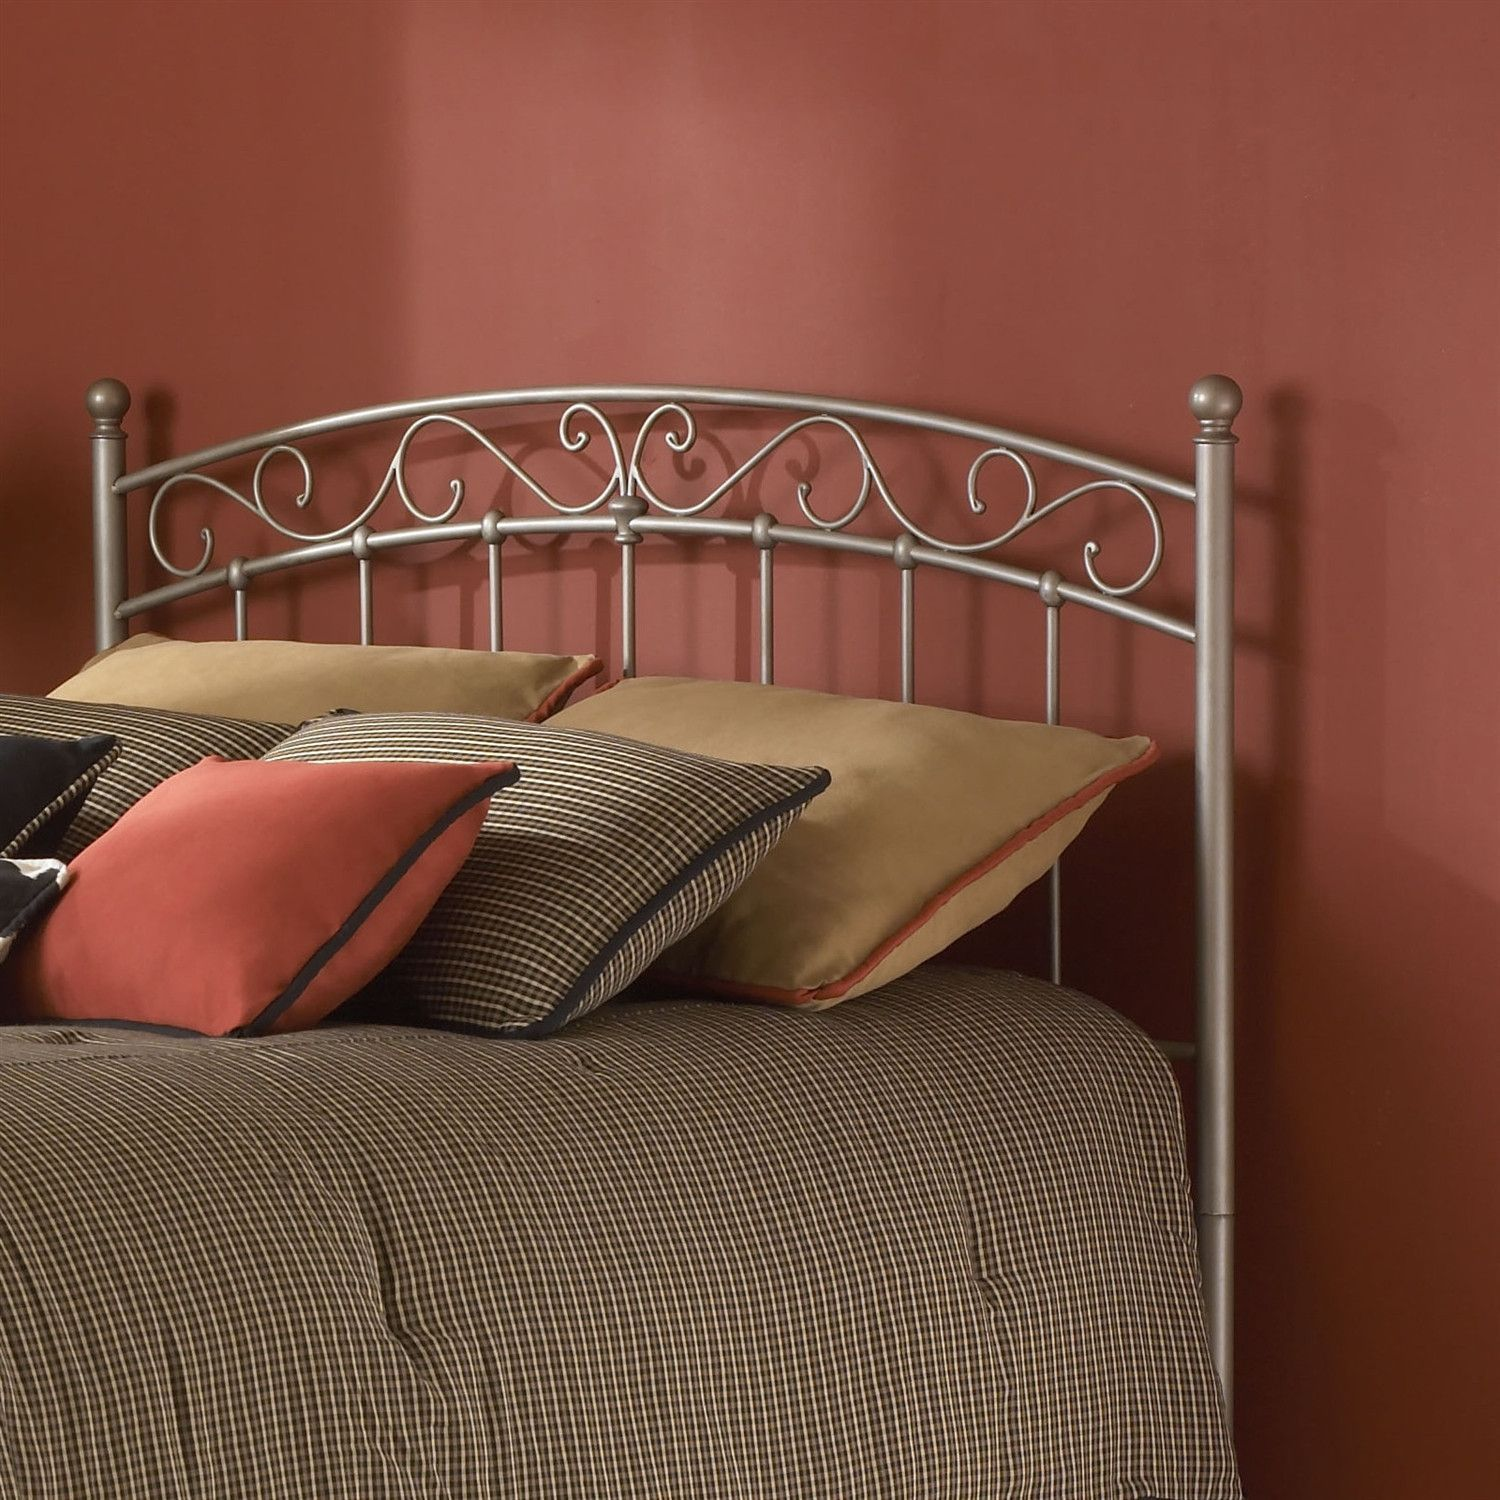 Queen size Arched Metal Headboard with SShaped Details